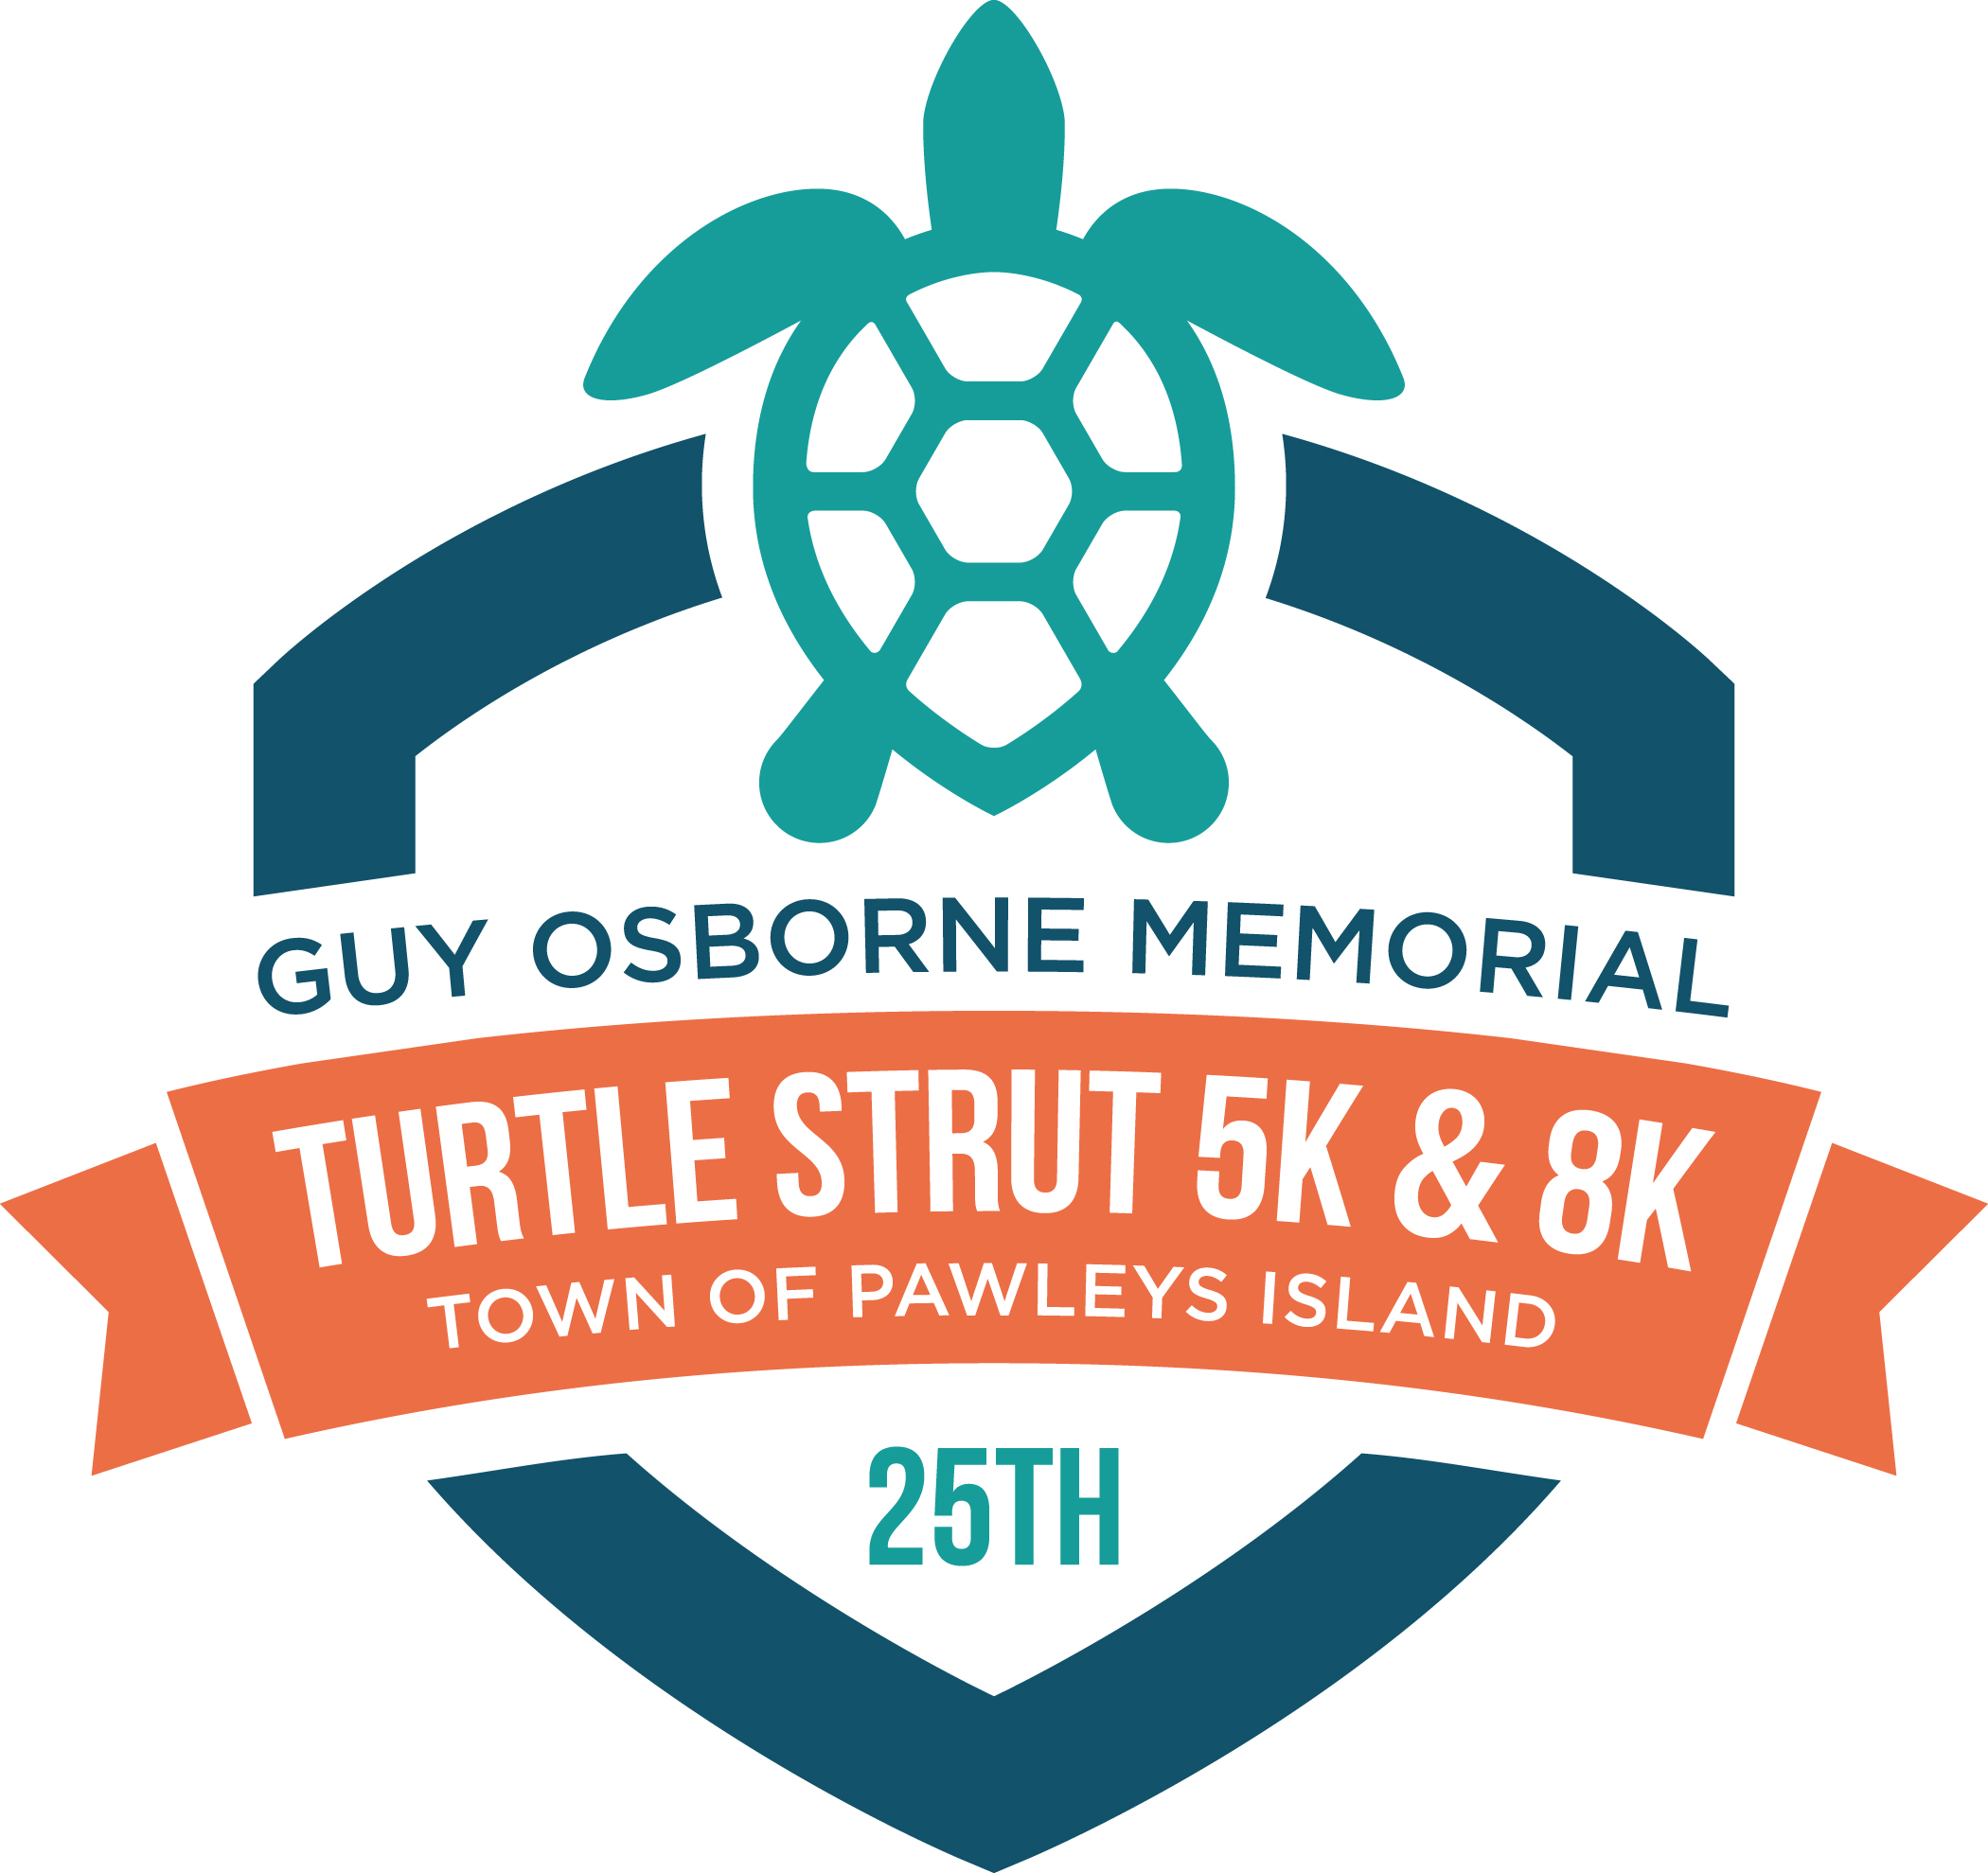 The guy osborne memorial pawleys island turtle strut 5k8k 26th the guy osborne memorial pawleys island turtle strut 5k8k 26th annual nvjuhfo Gallery